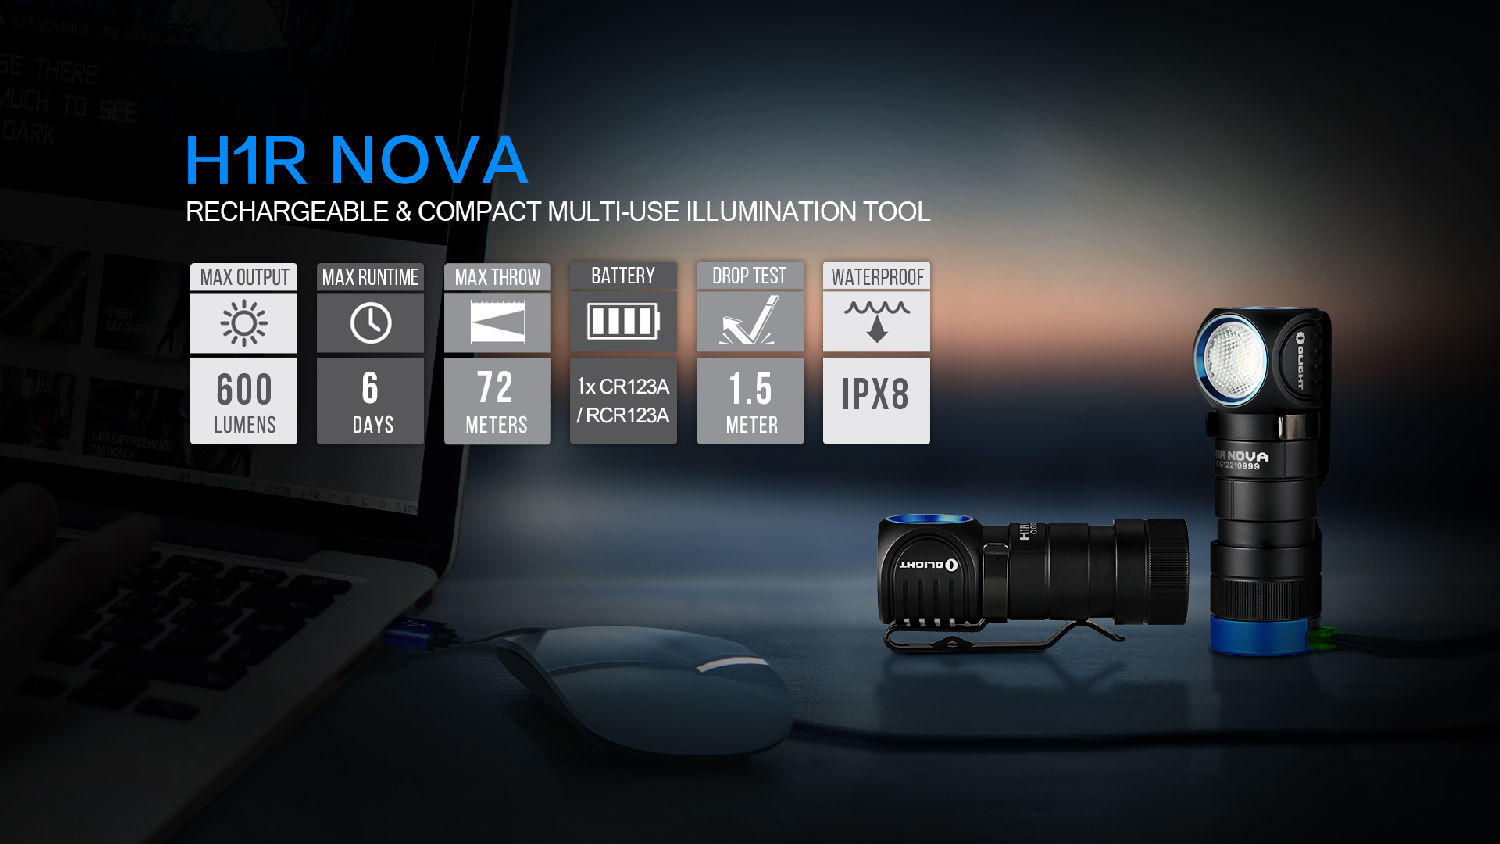 OLIGHT H1R Nova XM-L2 NW 600lm RCR123A Rechargeable Senter LED